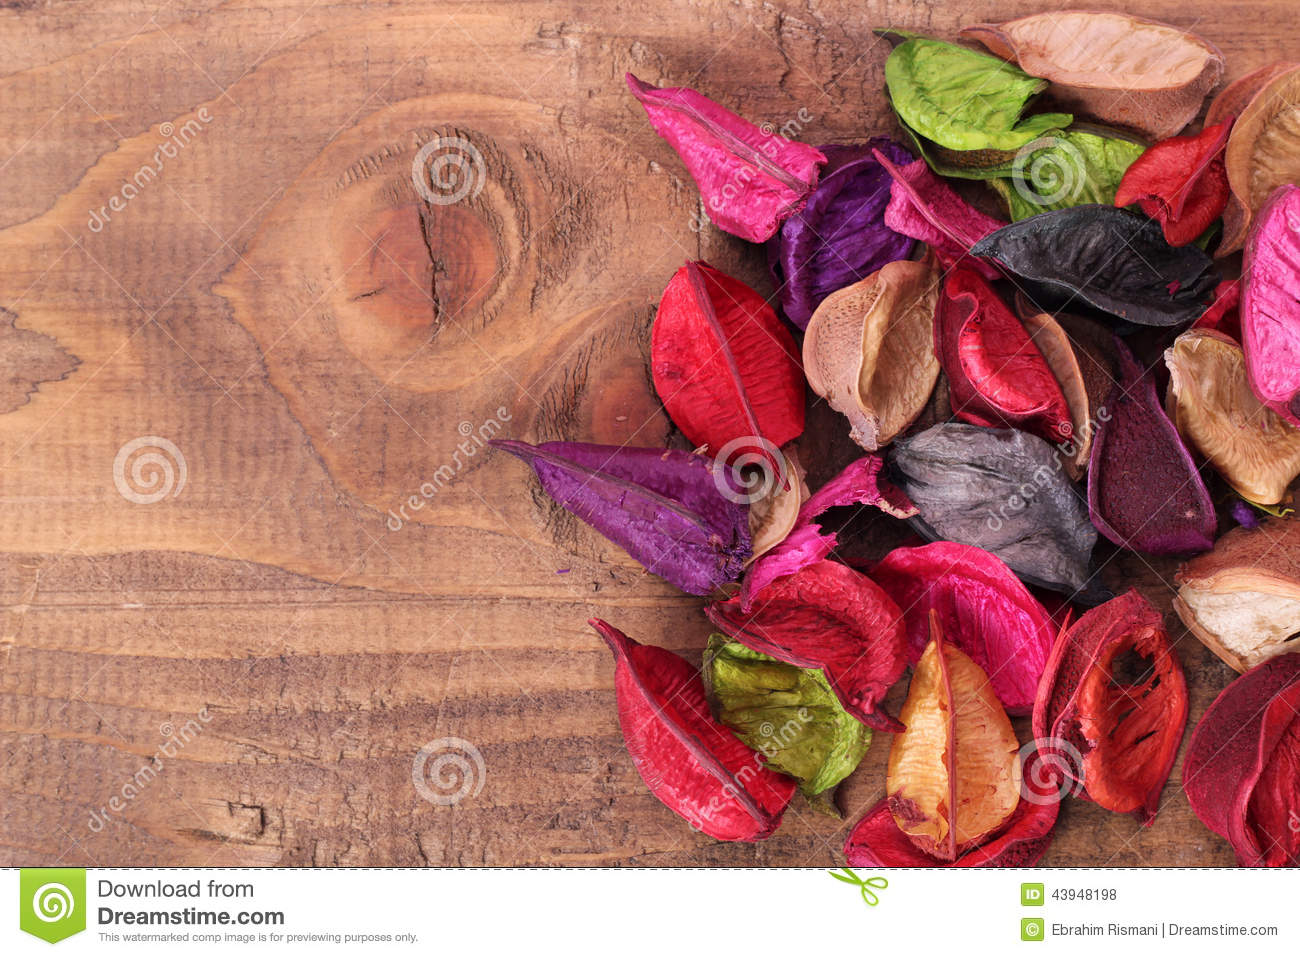 Download Dried Flowers stock photo. Image of dead, fragrance, christmas - 43948198